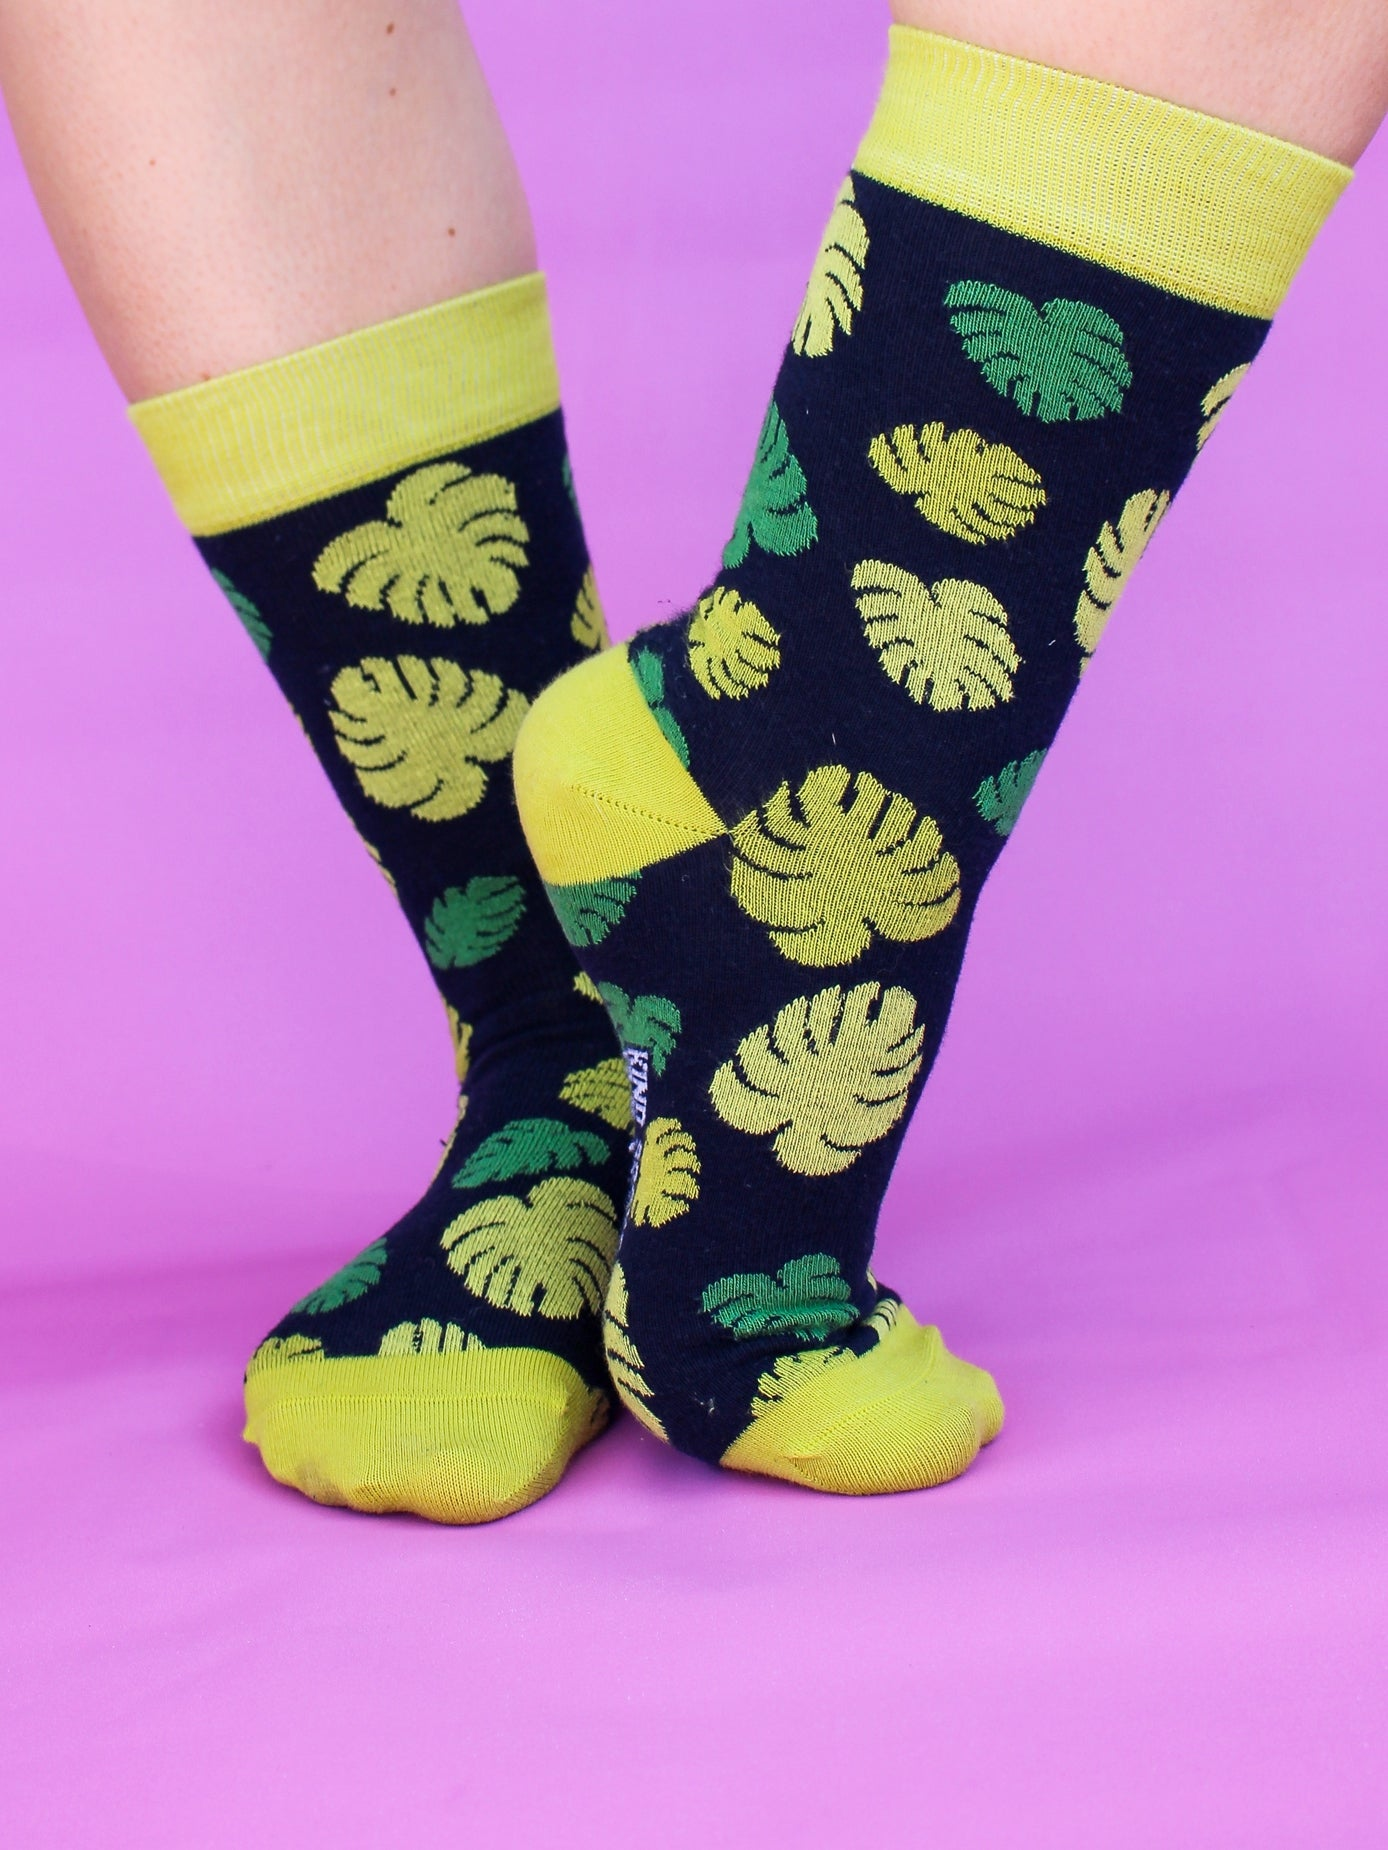 An individual wearing the black organic kind socks with a monstera leaf print and lime green trim standing in front of a bright pink backdrop.